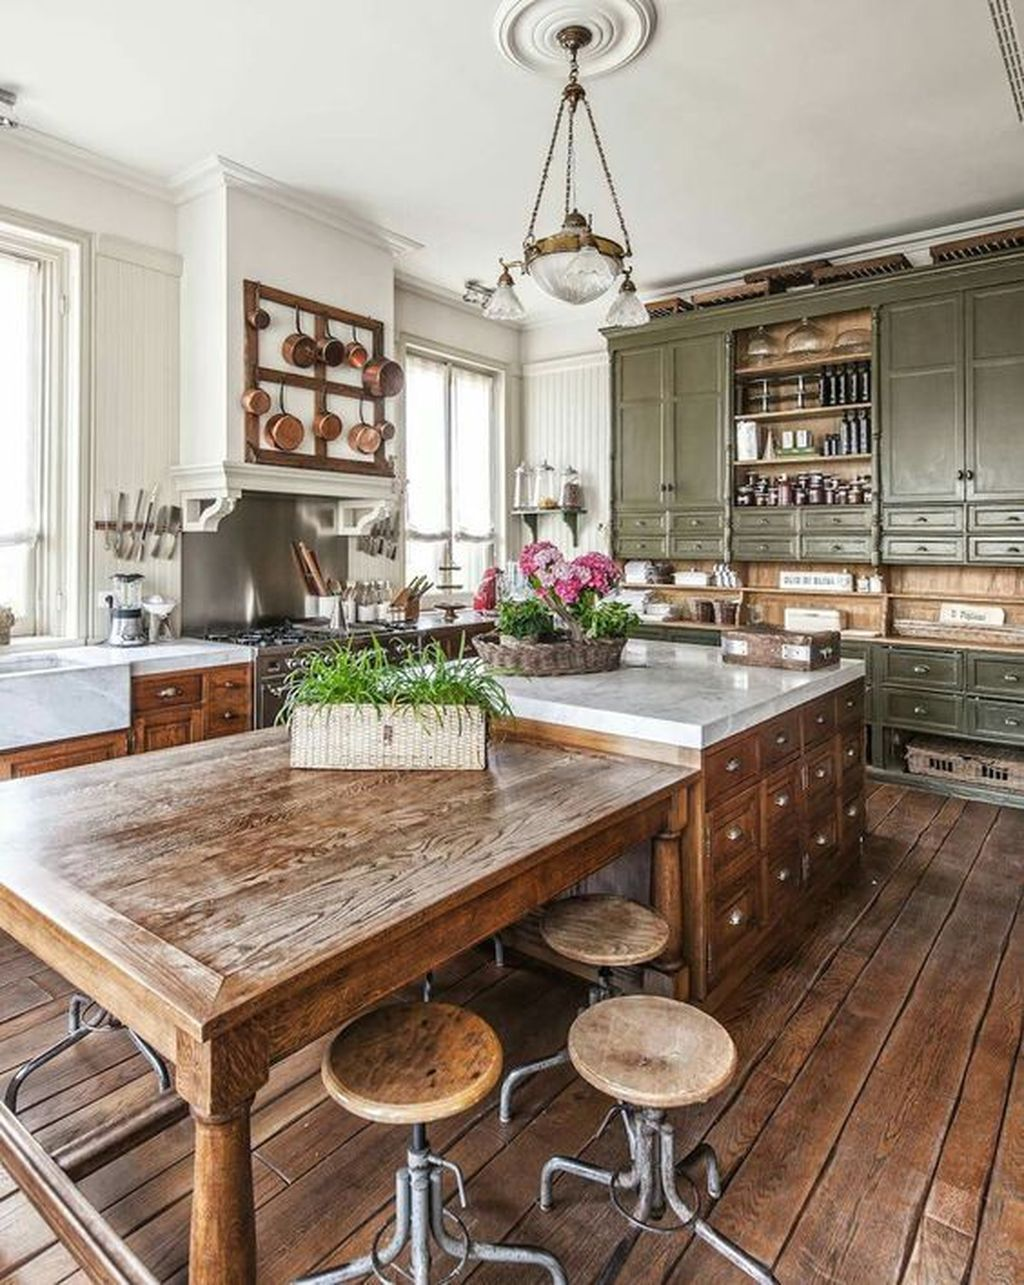 46 Inspiring Rustic Country Kitchen Ideas To Renew Your Ordinary Kitchen – Trendehouse